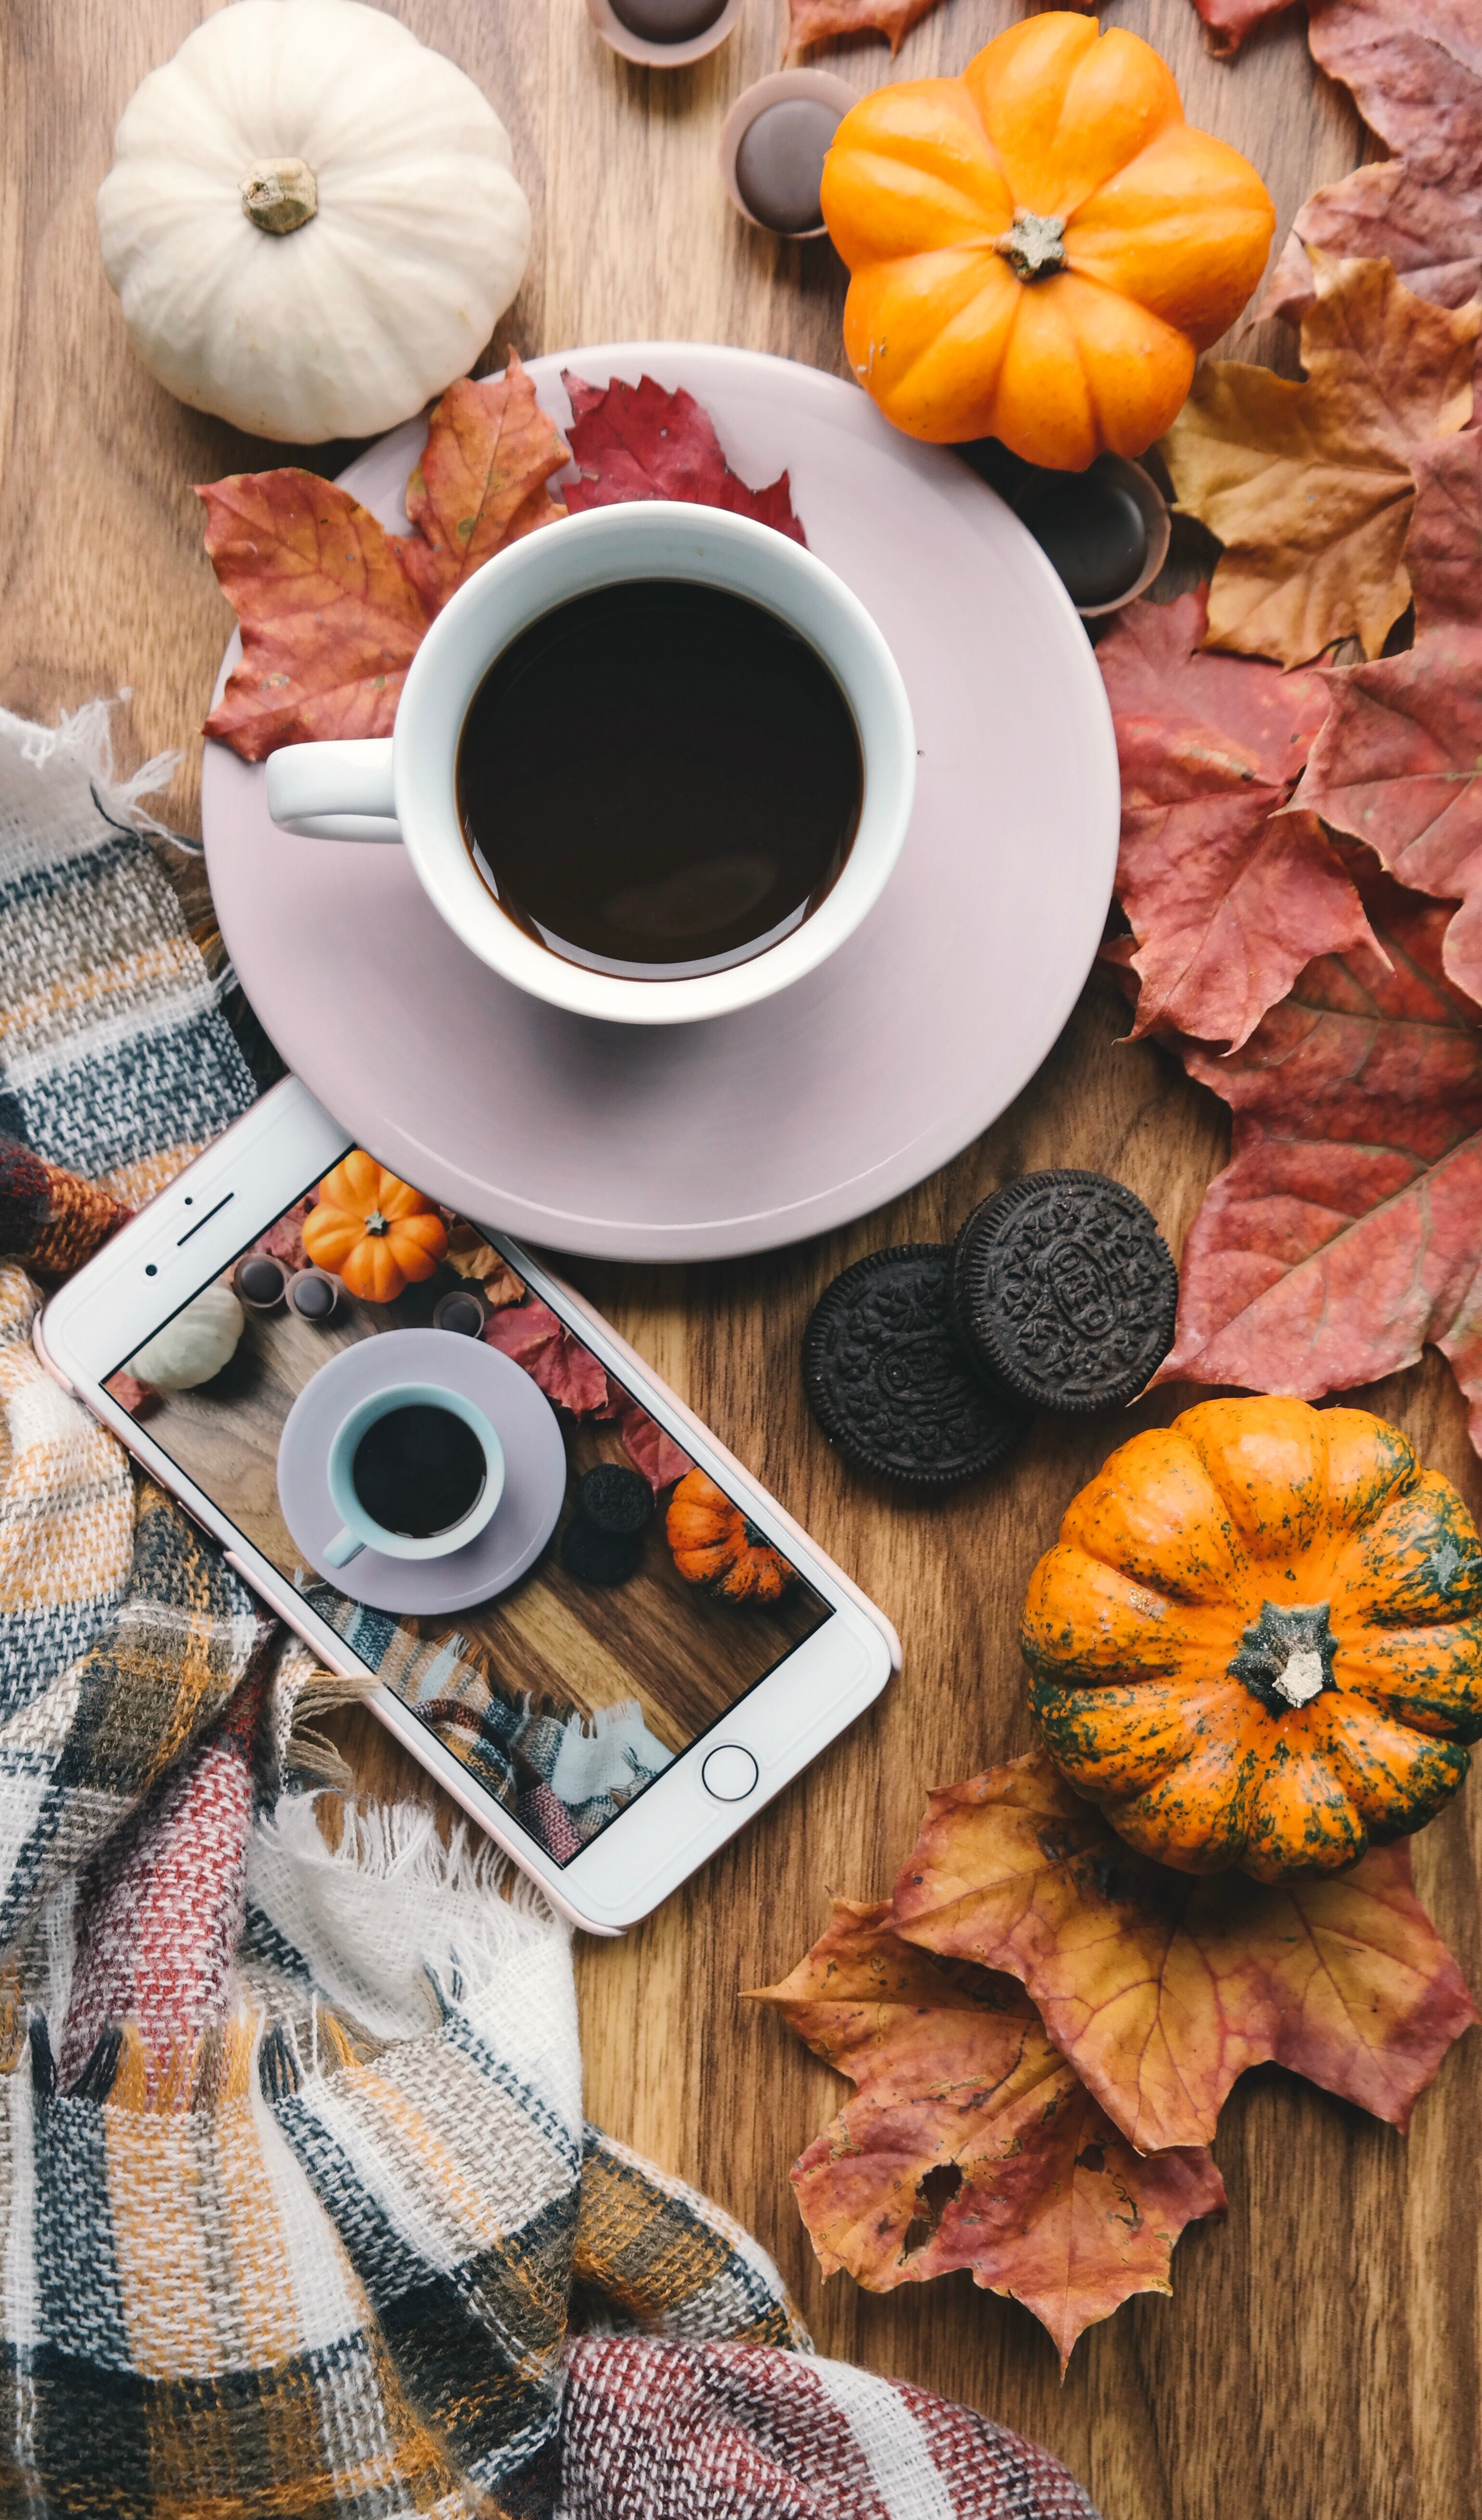 A pumpkin, cup of coffee and a phone with the image of the pumpkin and coffee sit on a table